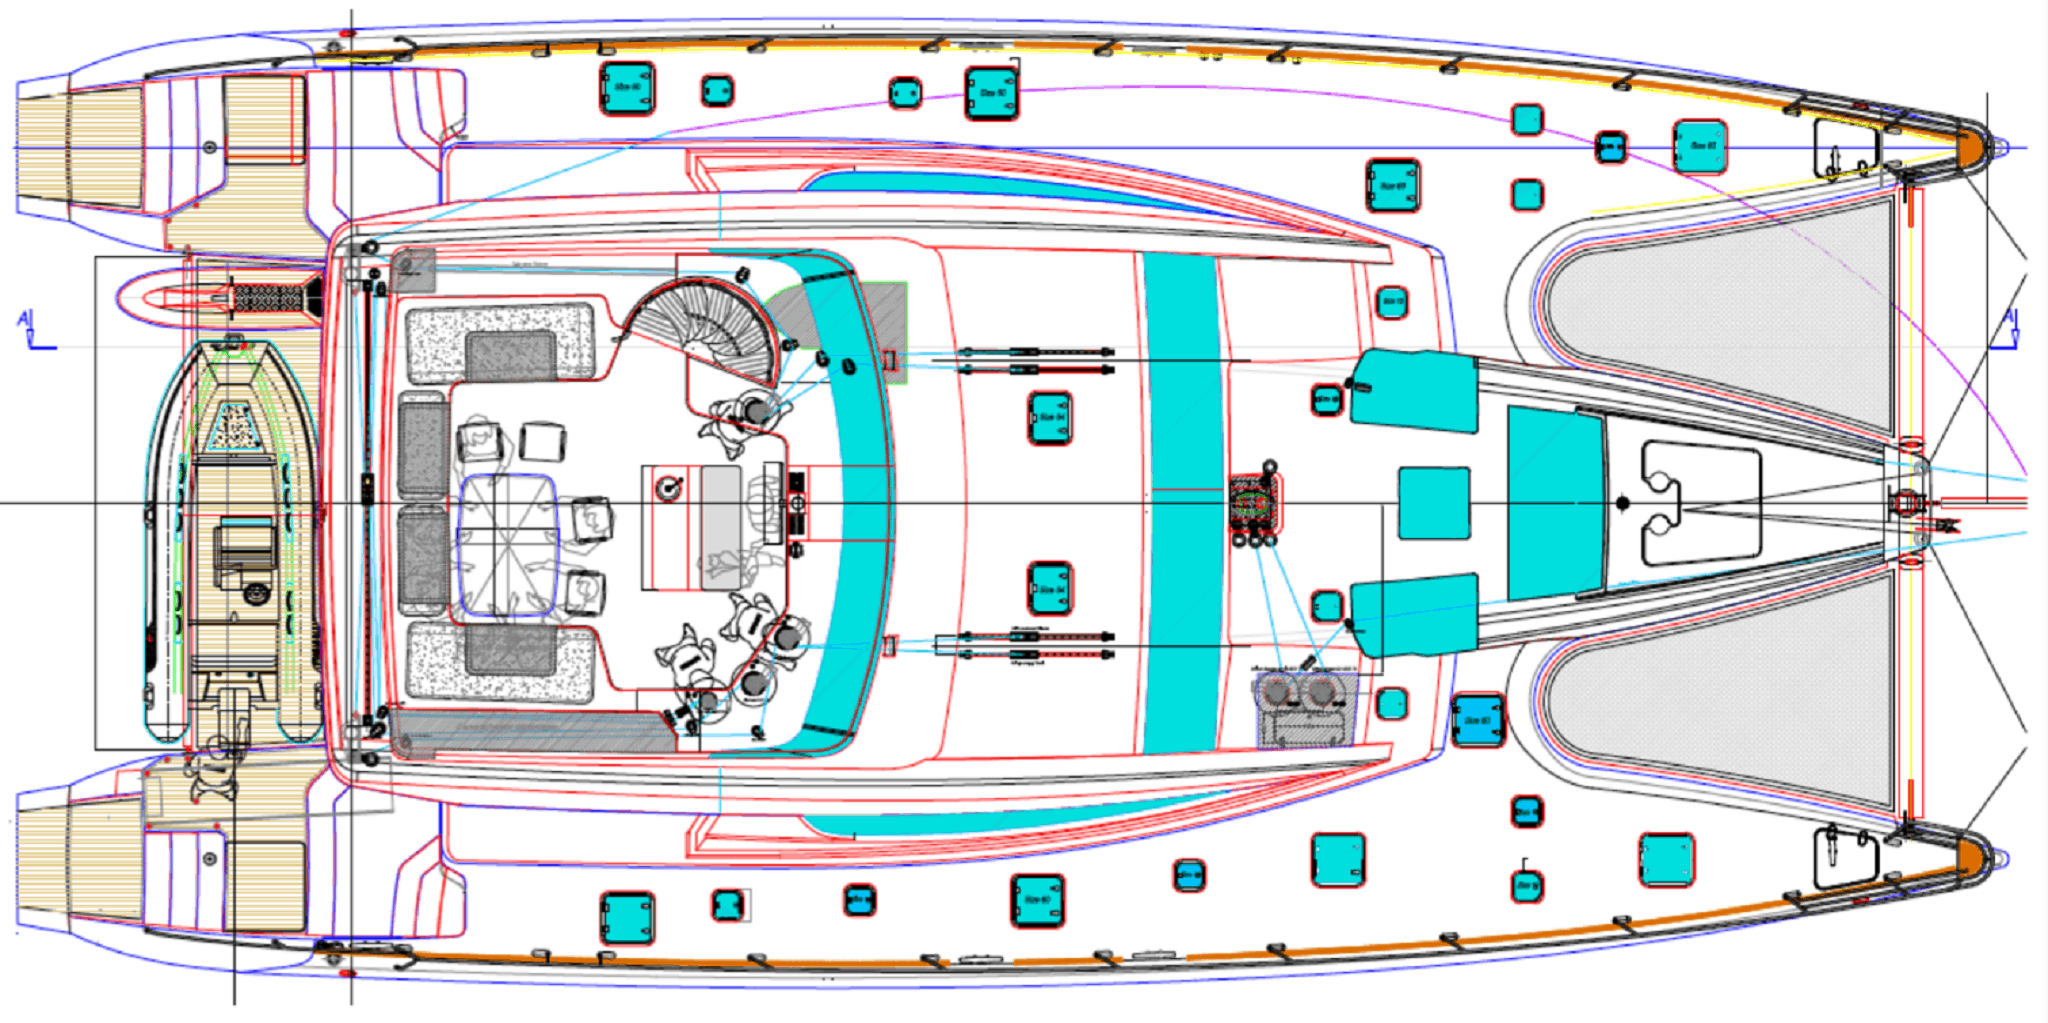 Series 7 Deck Layout